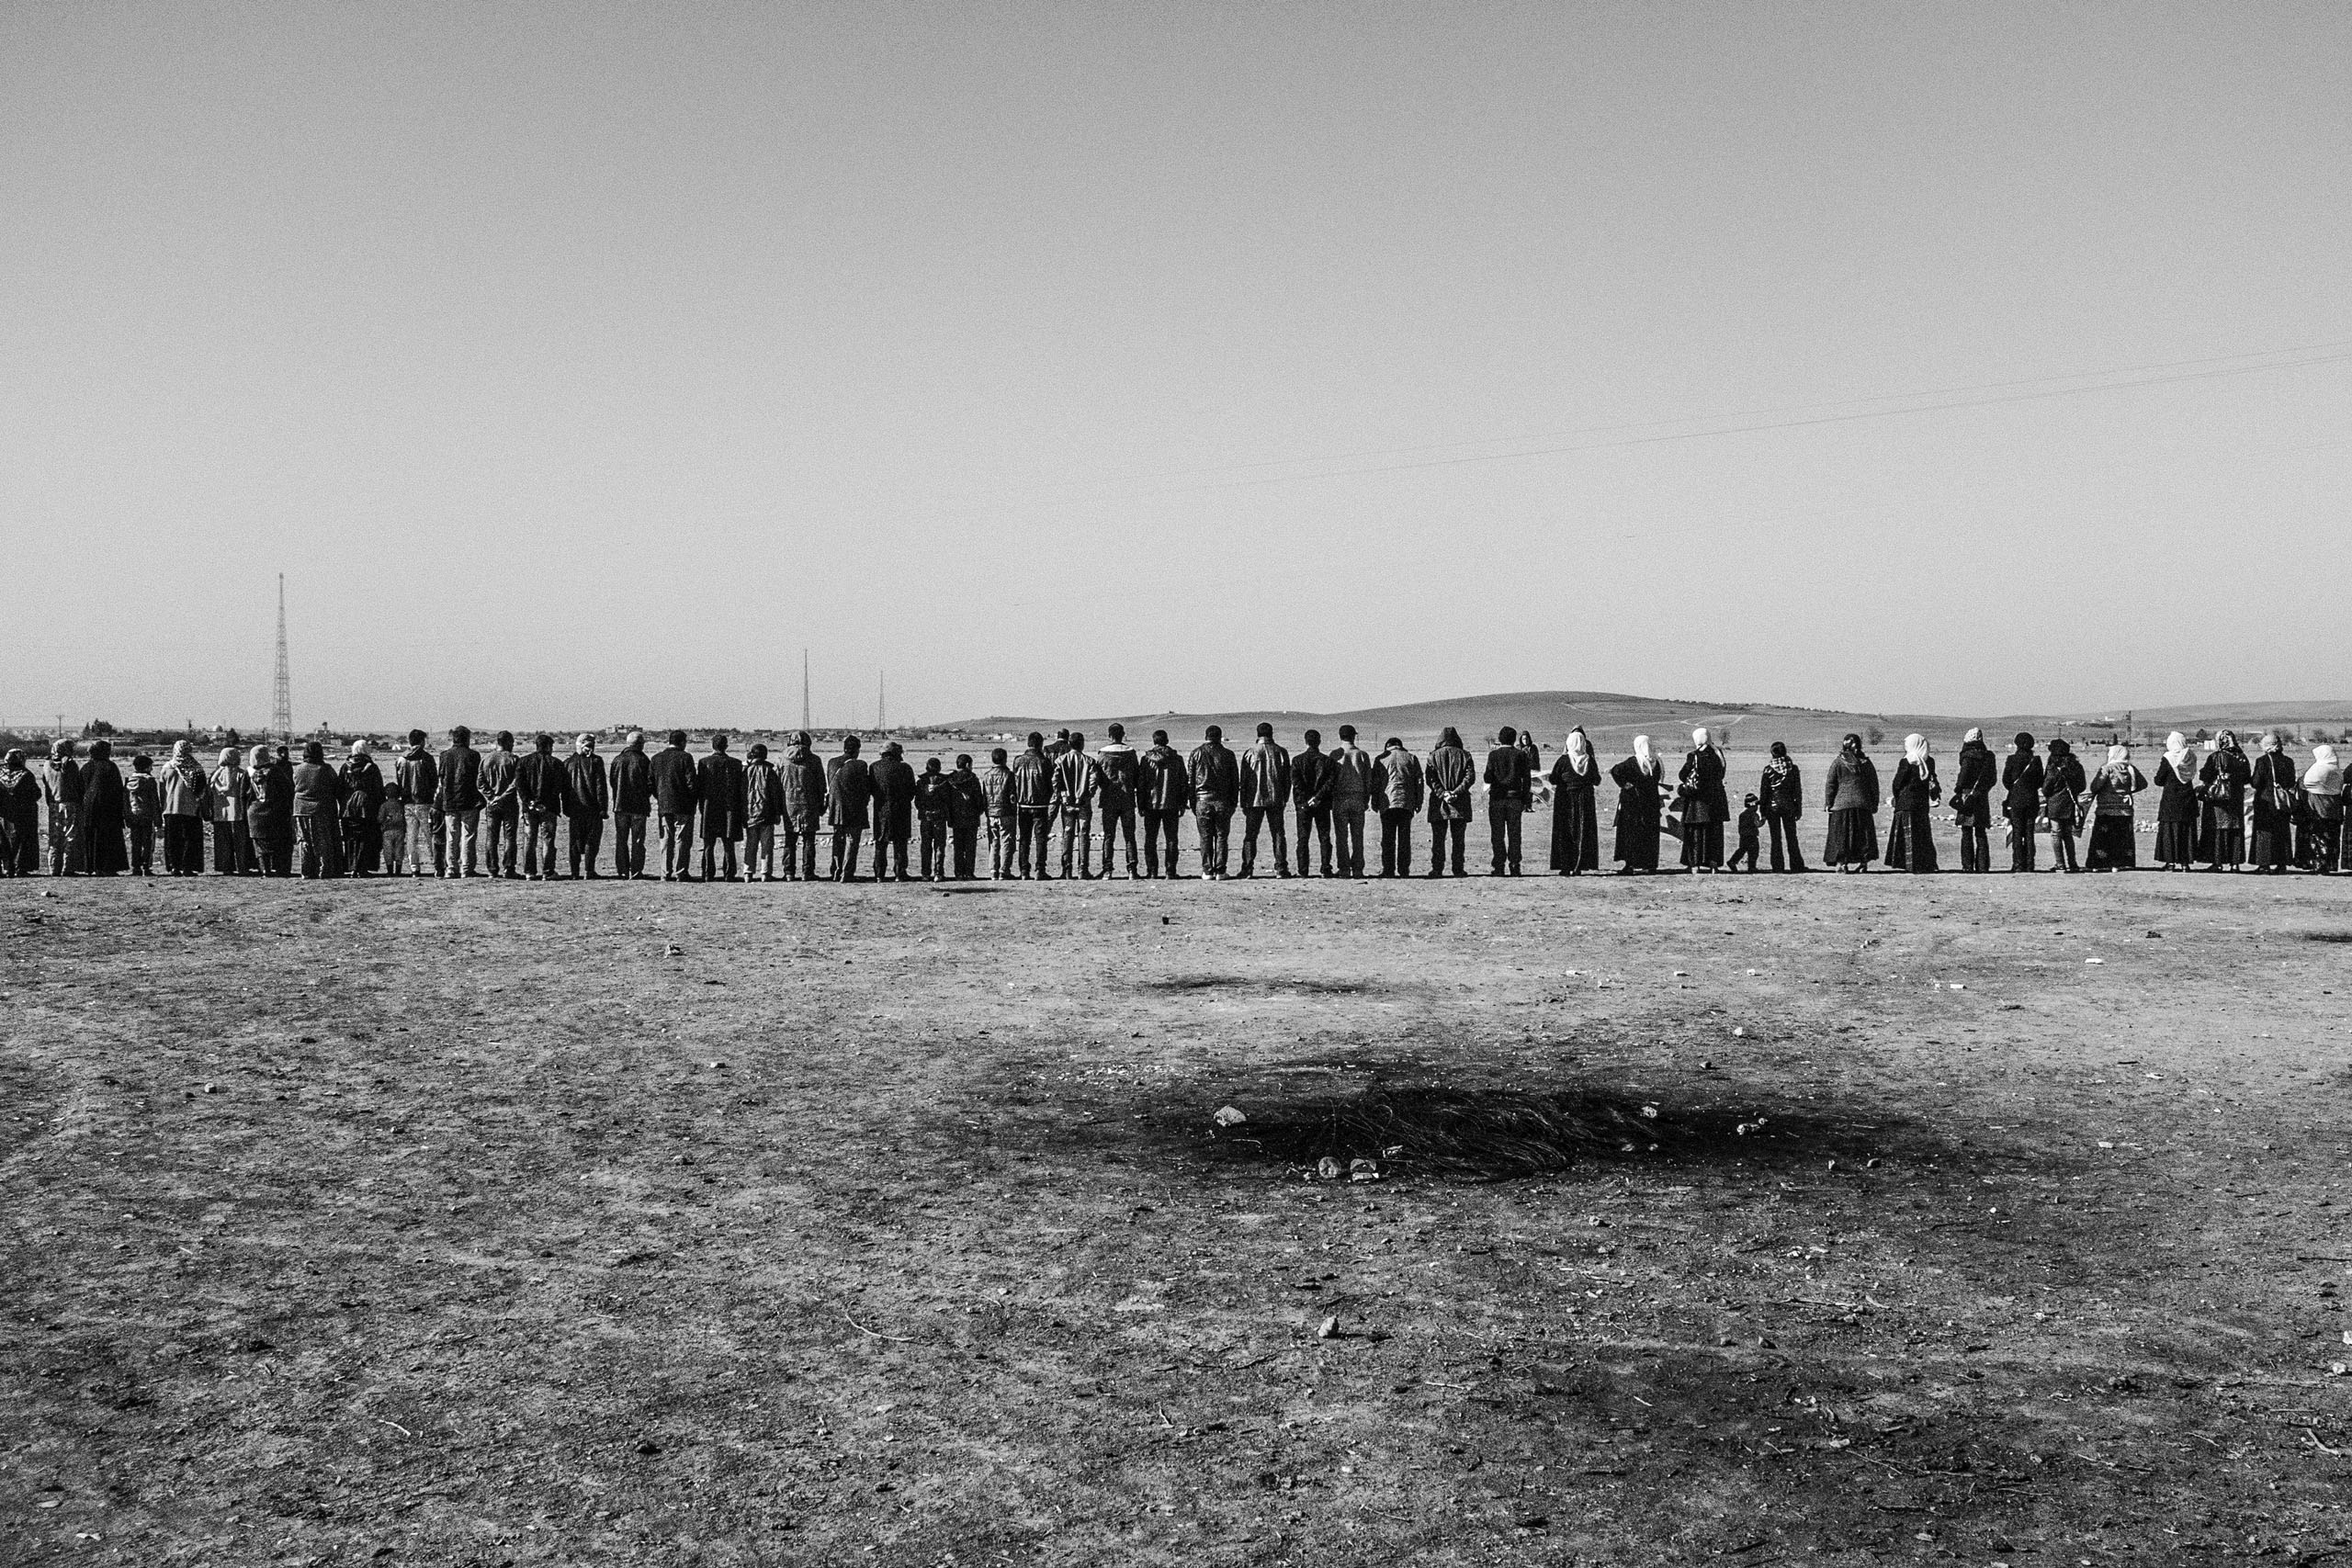 Refugees from Kobani, Syria line up at the Turkish-Syrian border  in Suruc, Turkey to support the Kurds fighting against ISIS, Jan. 2015